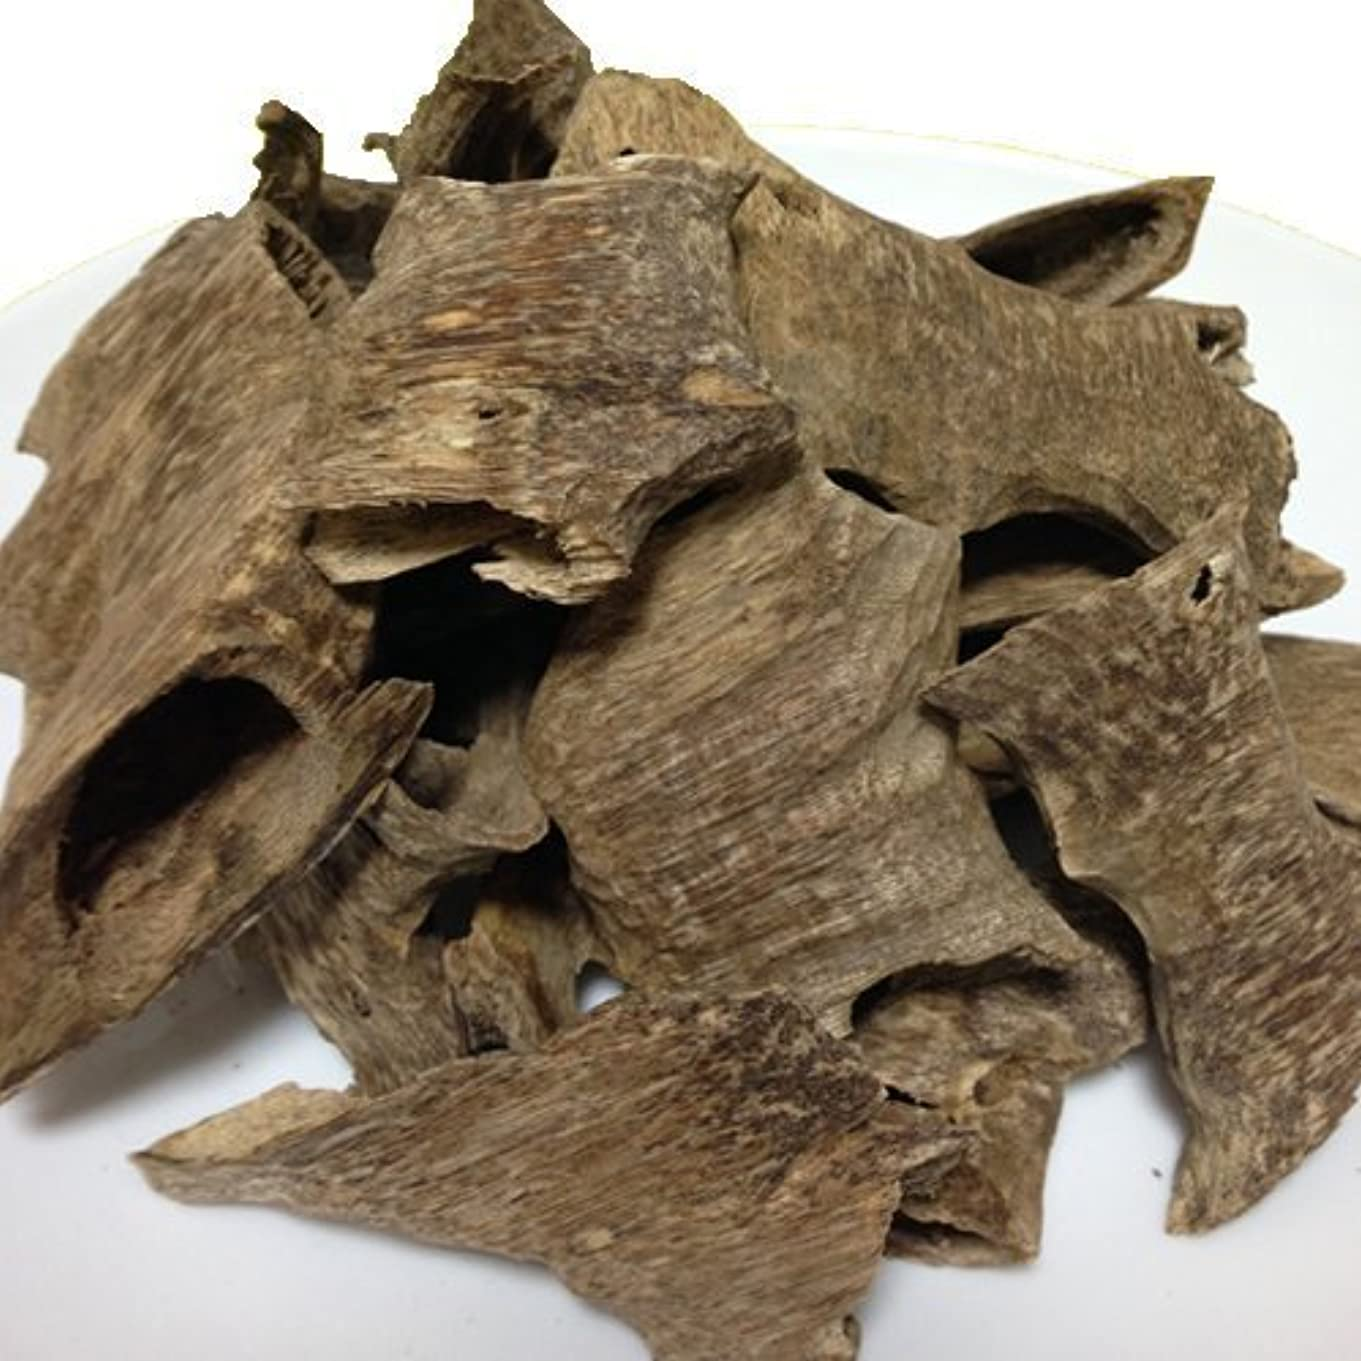 推測ペック冷ややかな[ Vietnam market ] Agarwood Chips (Aloeswood Agalloch Eaglewood) From Vietnam 3.5 Oz by Vietnam market [並行輸入品]